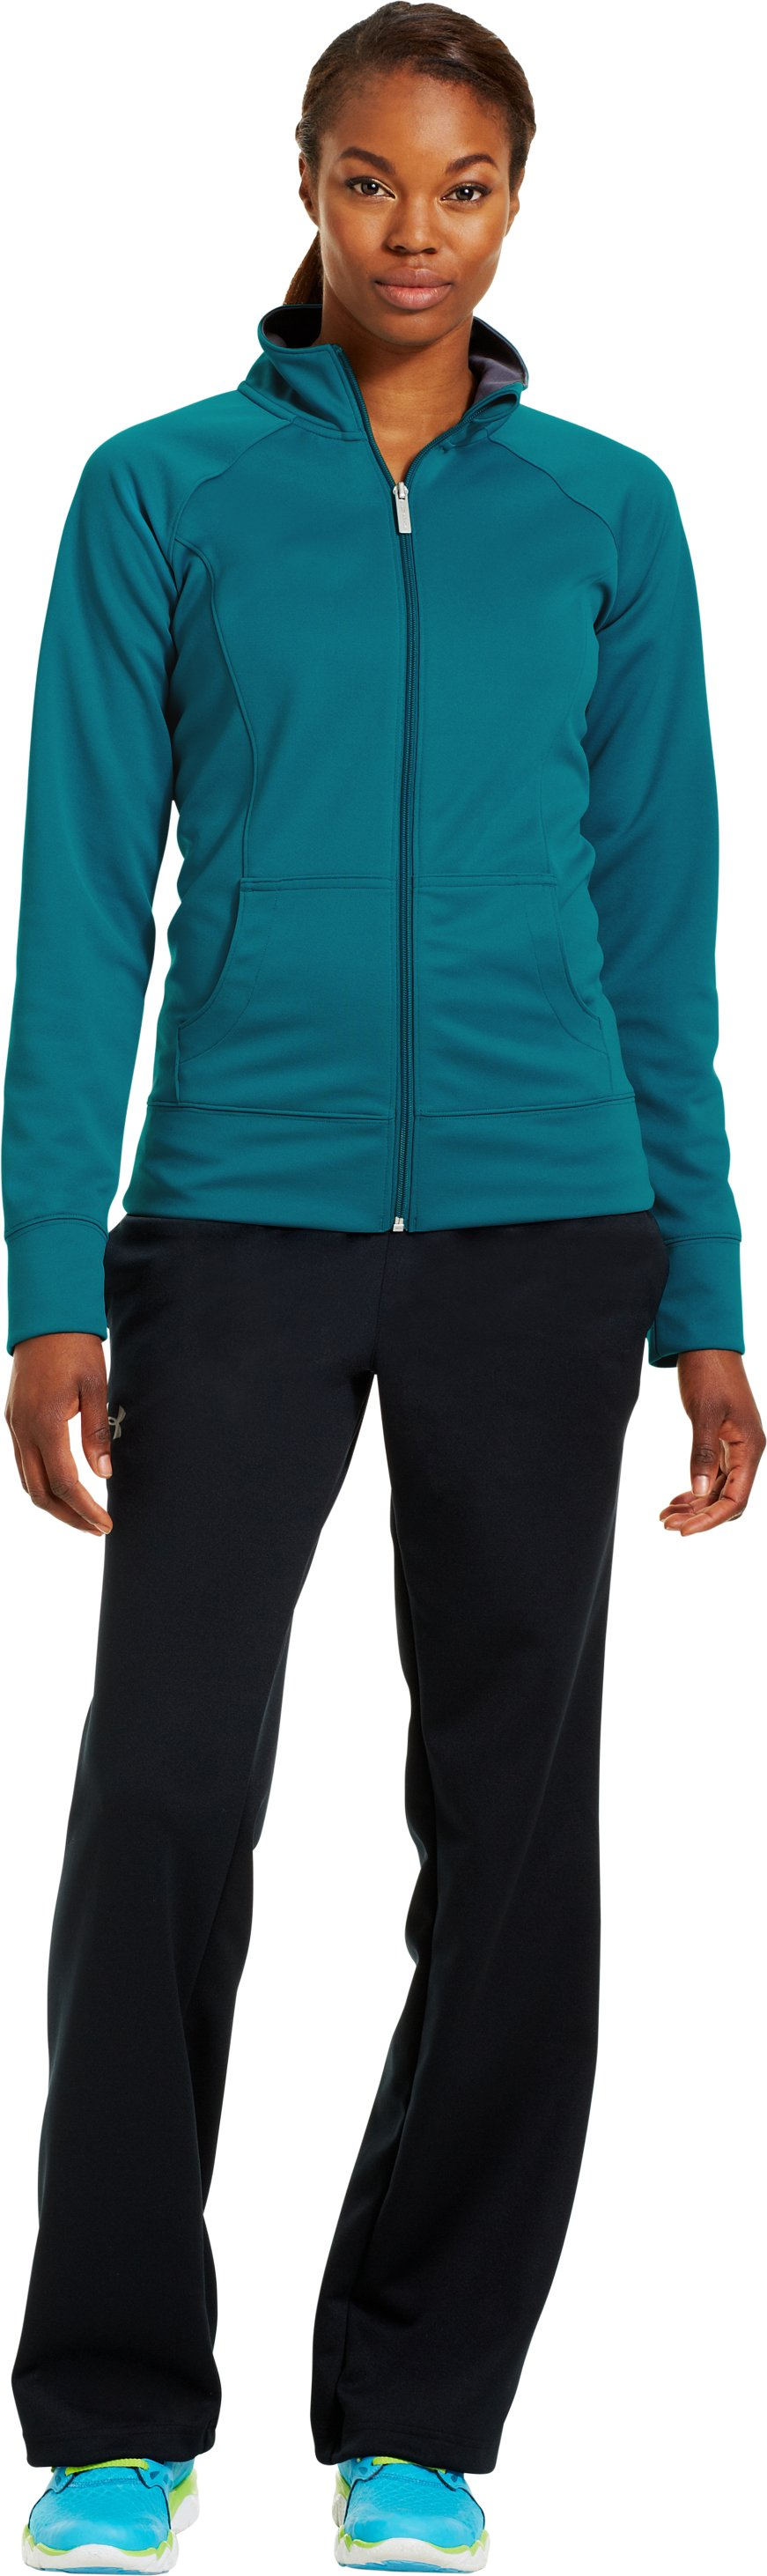 Women's UA Craze Jacket, CERULEAN